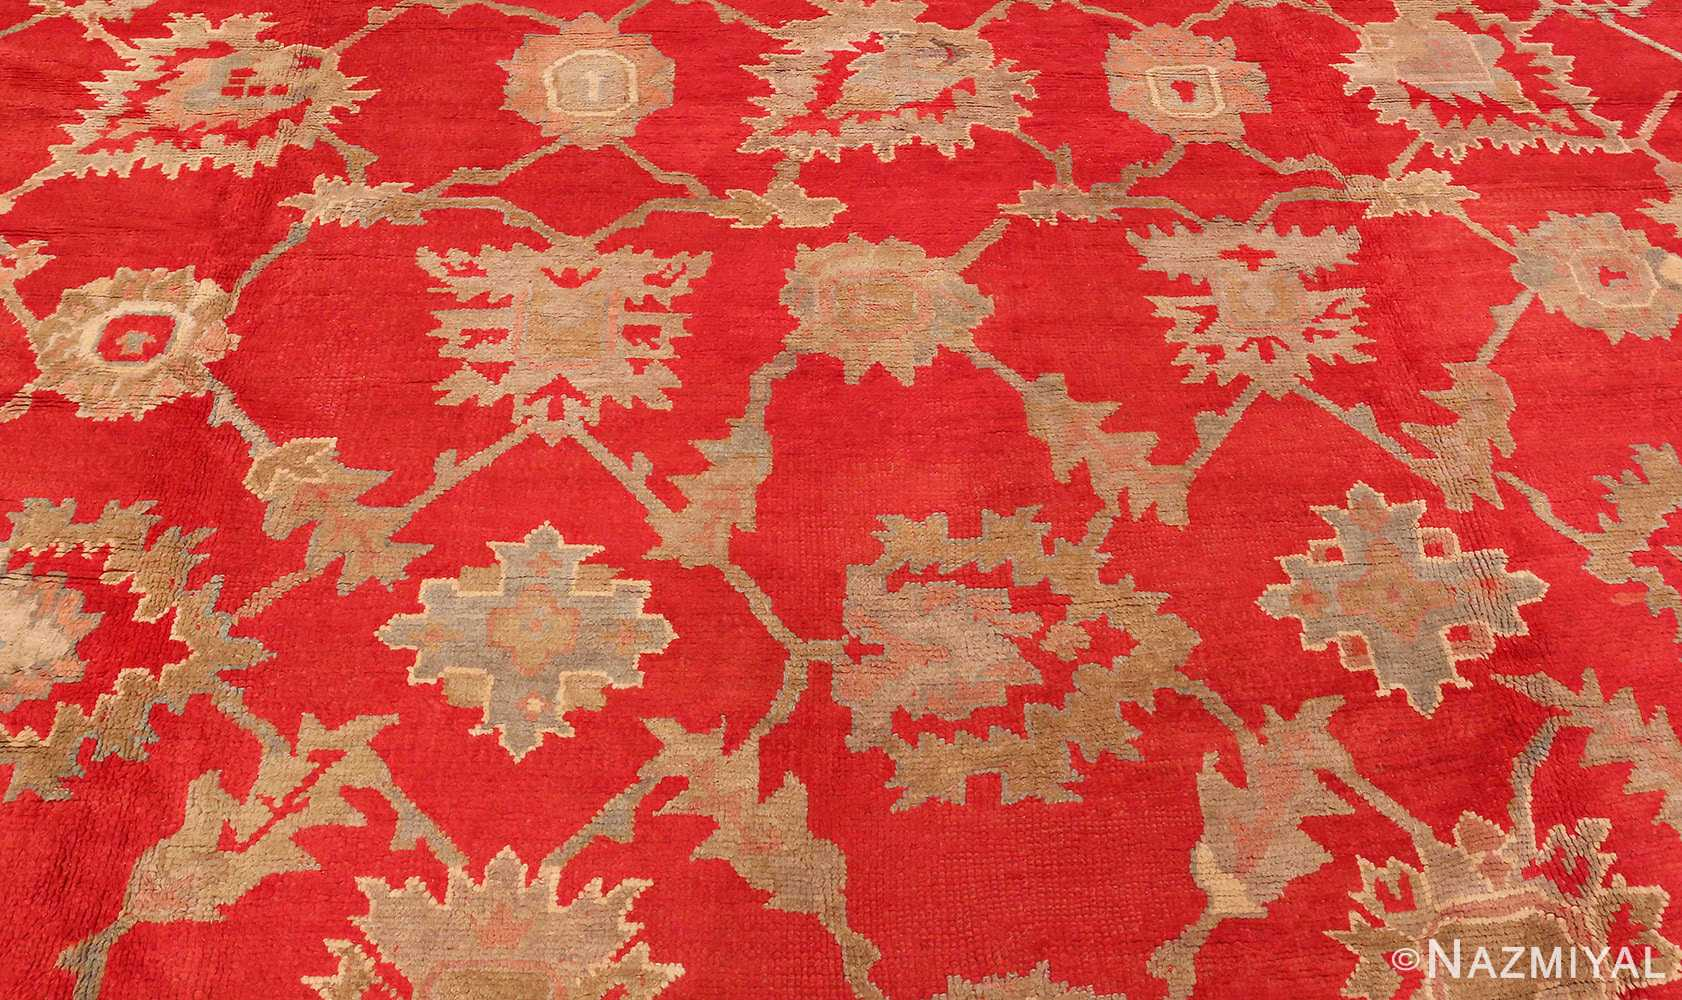 Picture of the Center Of Large Red Antique Turkish Oushak Rug #70012 From Nazmiyal Antique Rugs in NYC